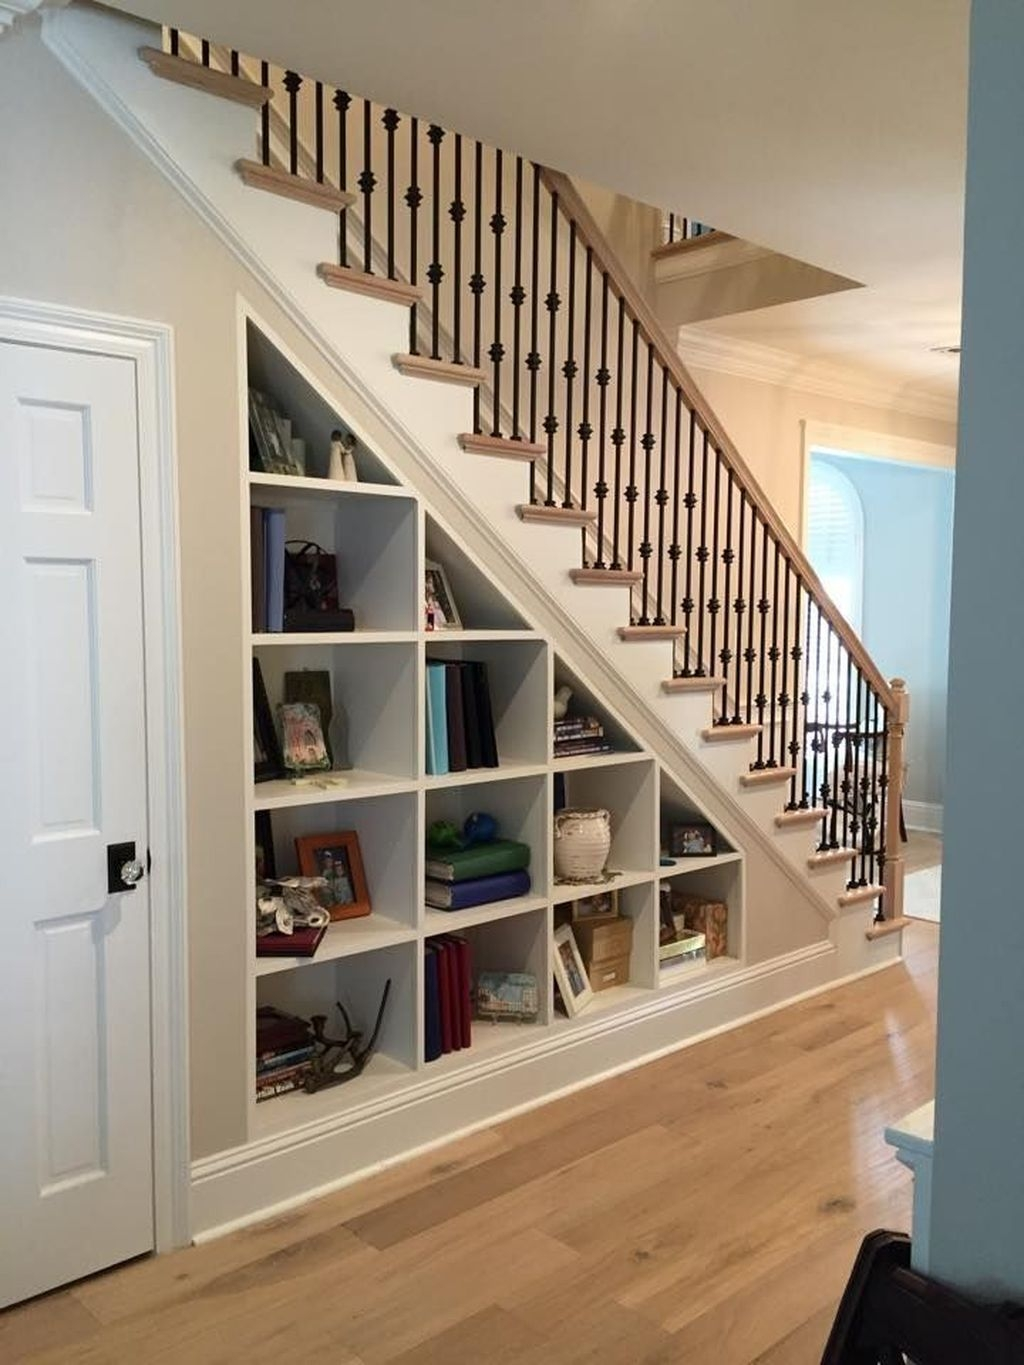 Catchy Remodel Storage Stairs Design Ideas To Try02